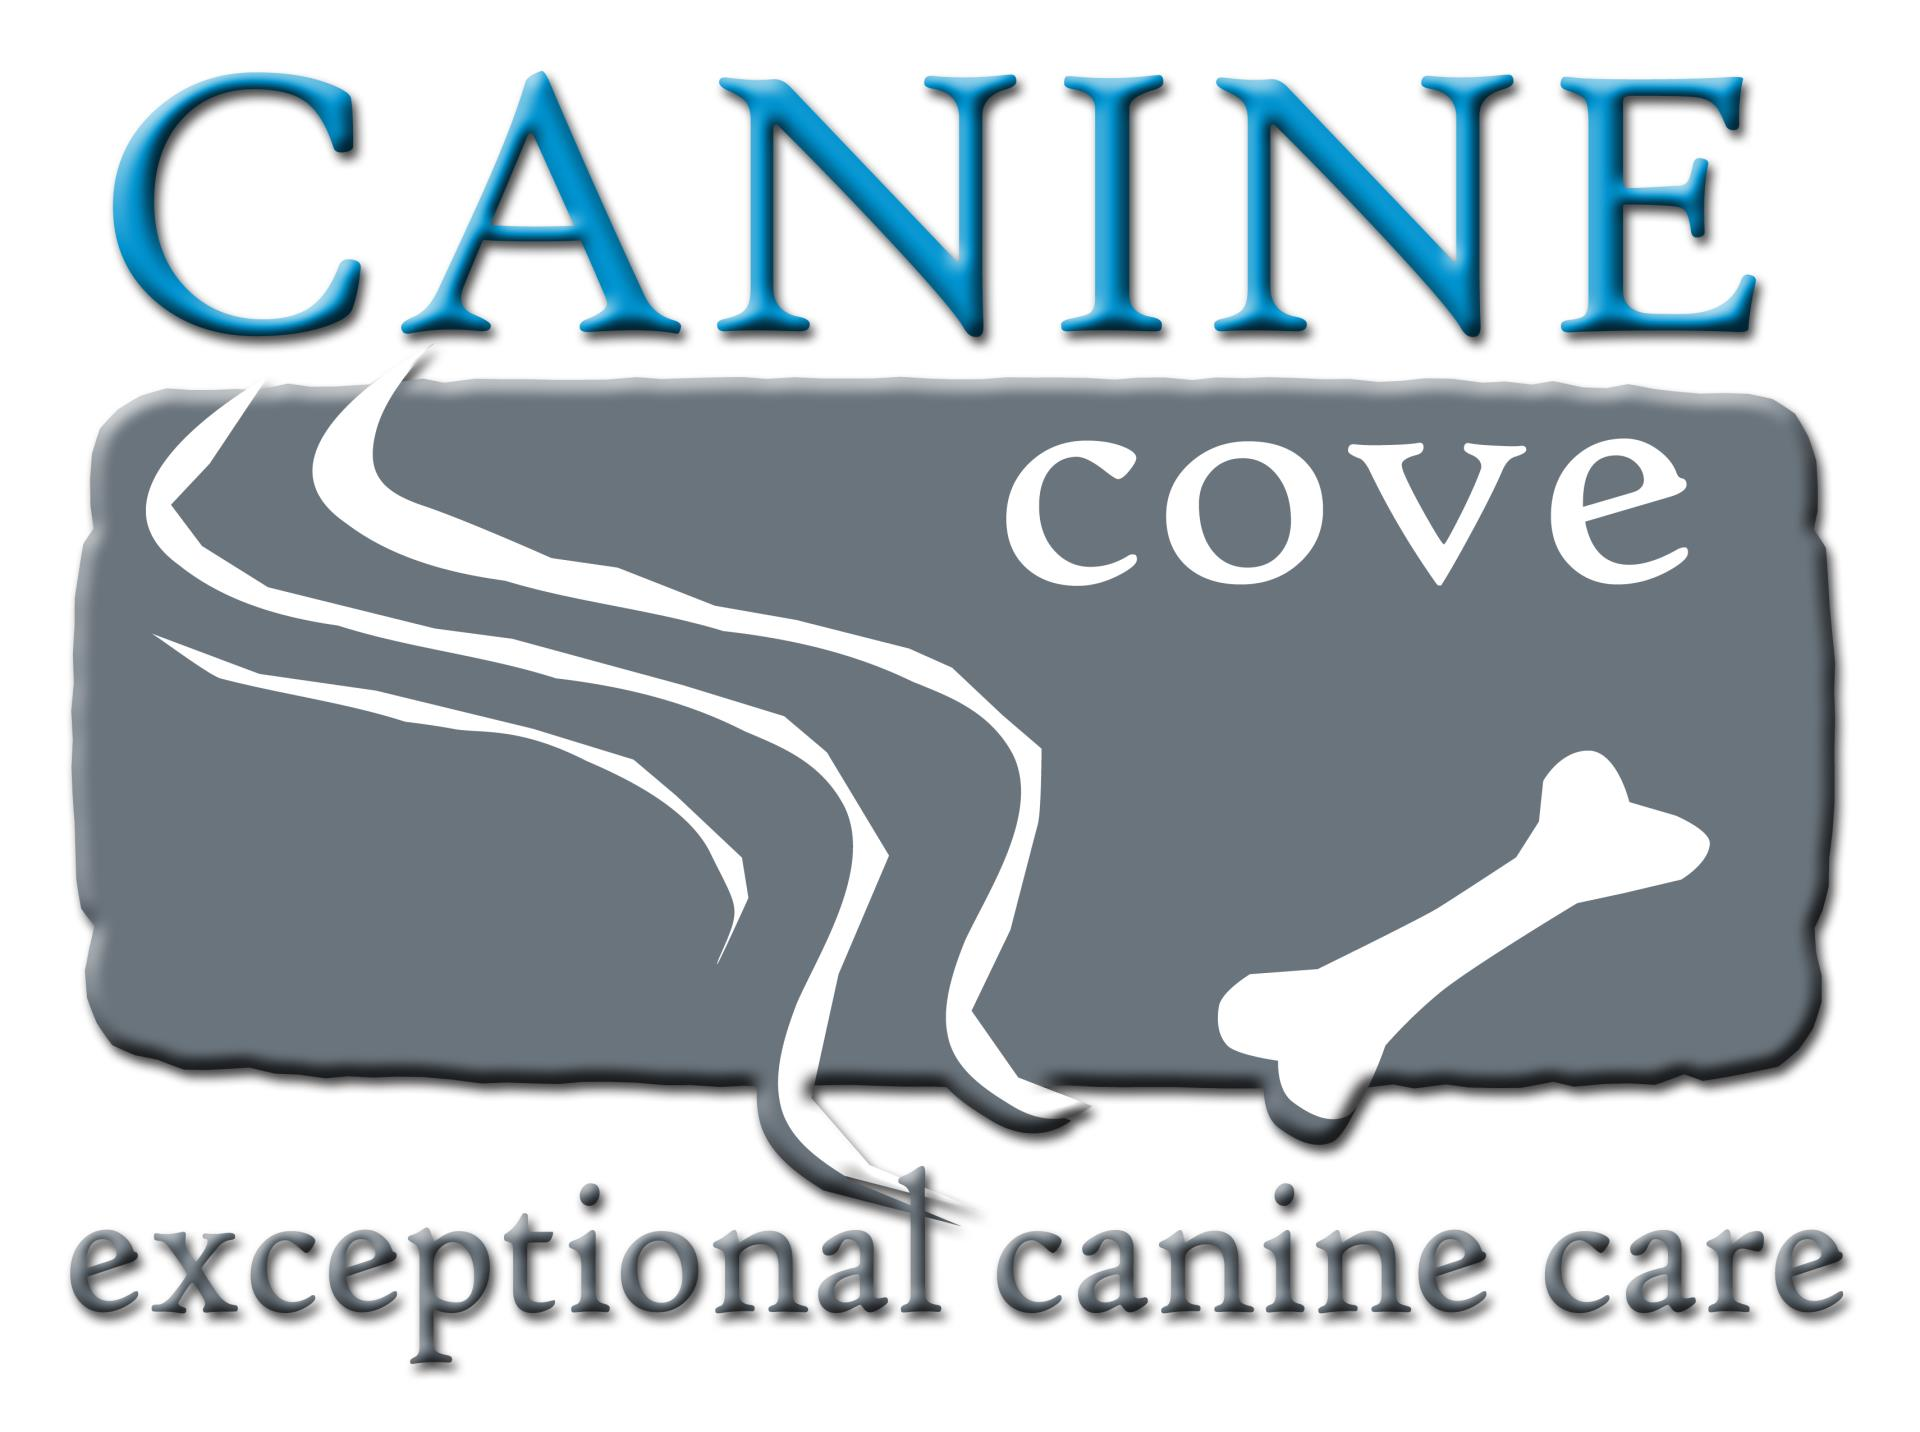 canine cove logo white background